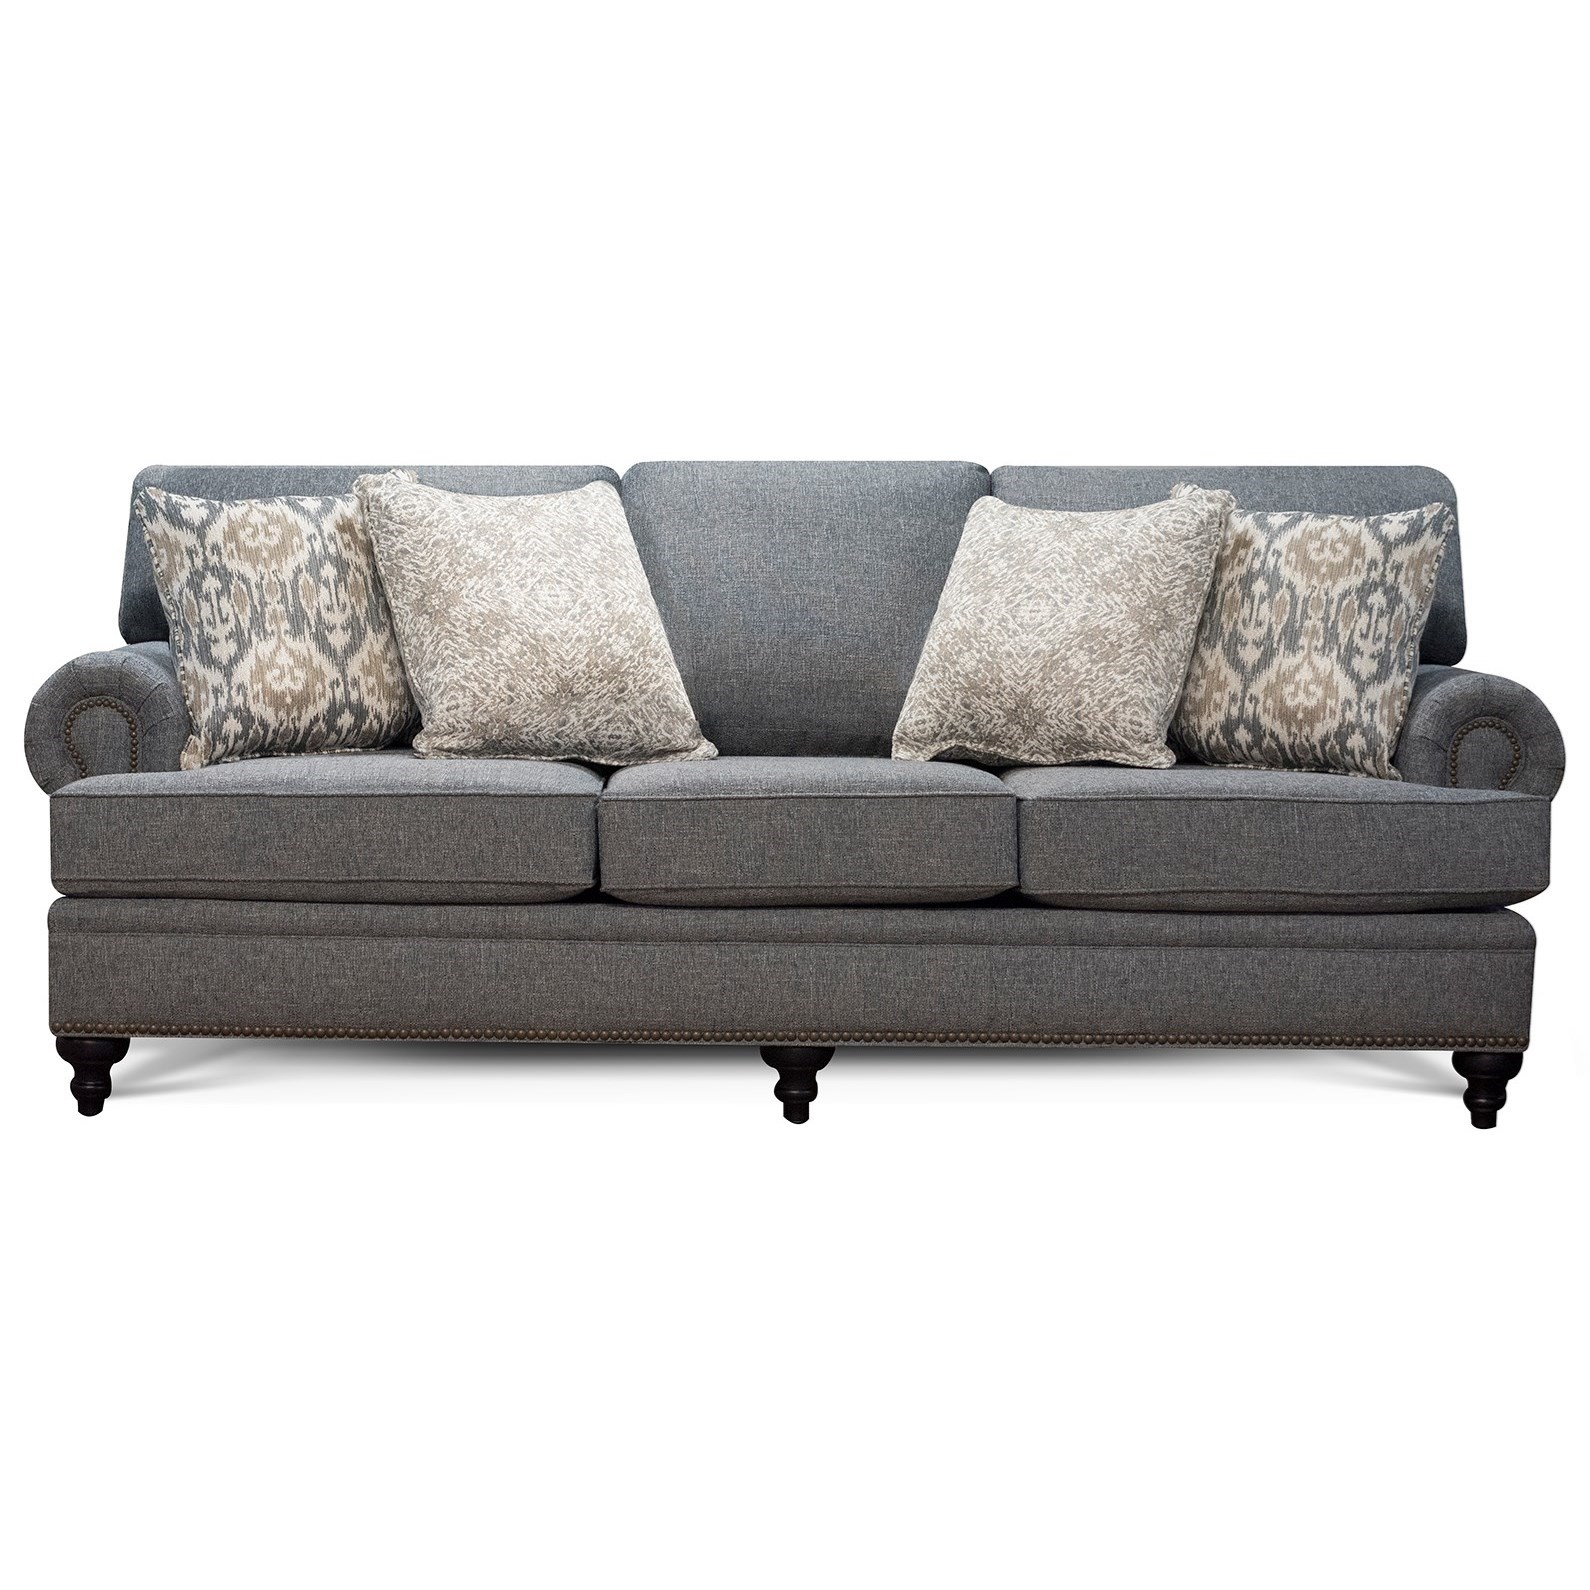 June Sofa with Nailhead Trim by England at Miller Waldrop Furniture and Decor